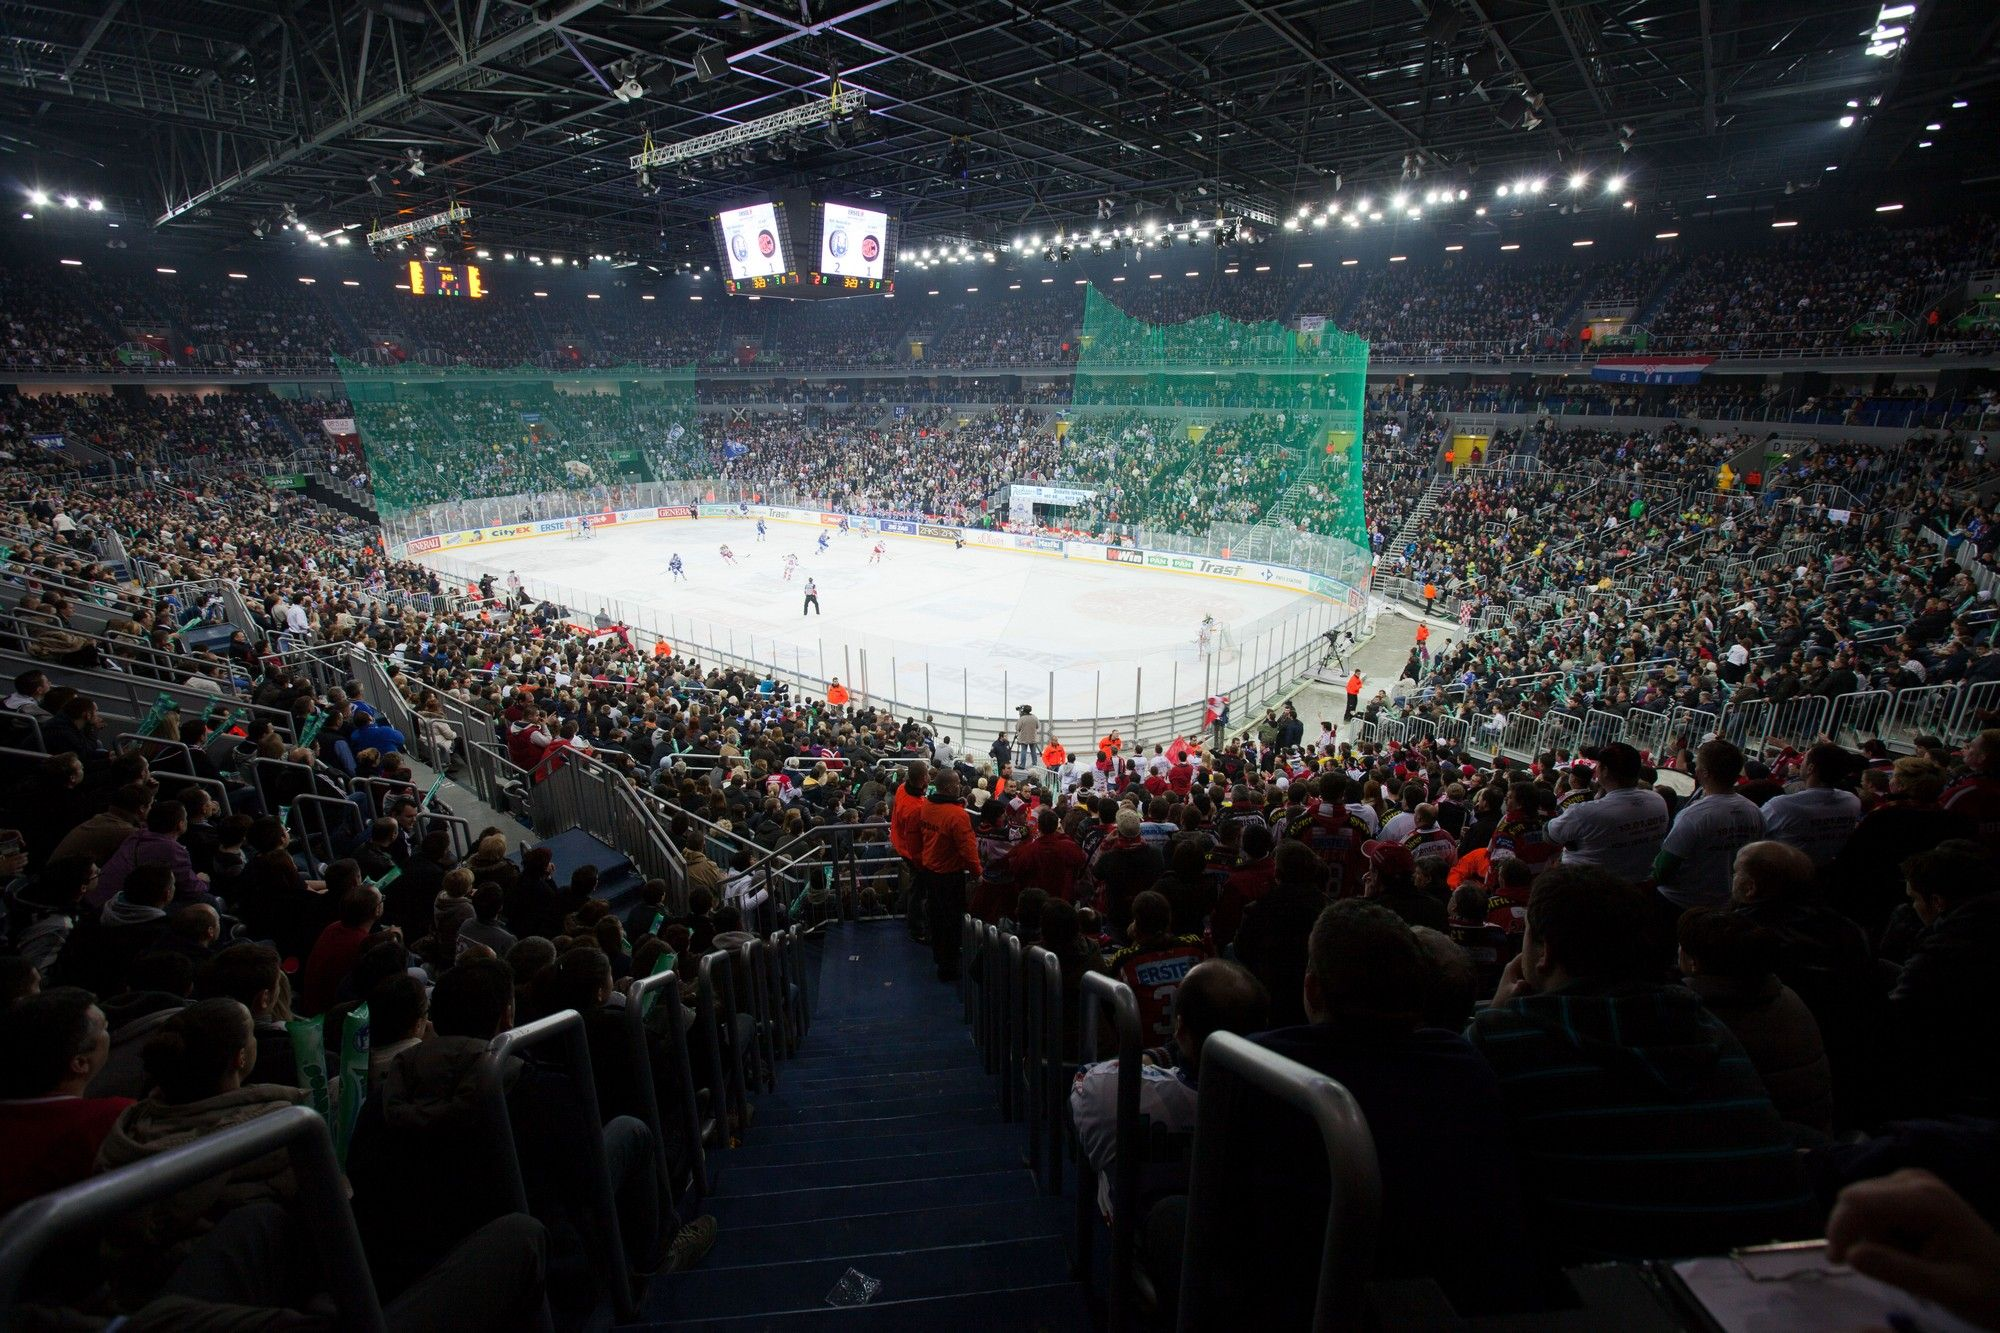 Arena Zagreb Our Weekend Crib Looks Cool Right Zagreb Arena Hockey Rink